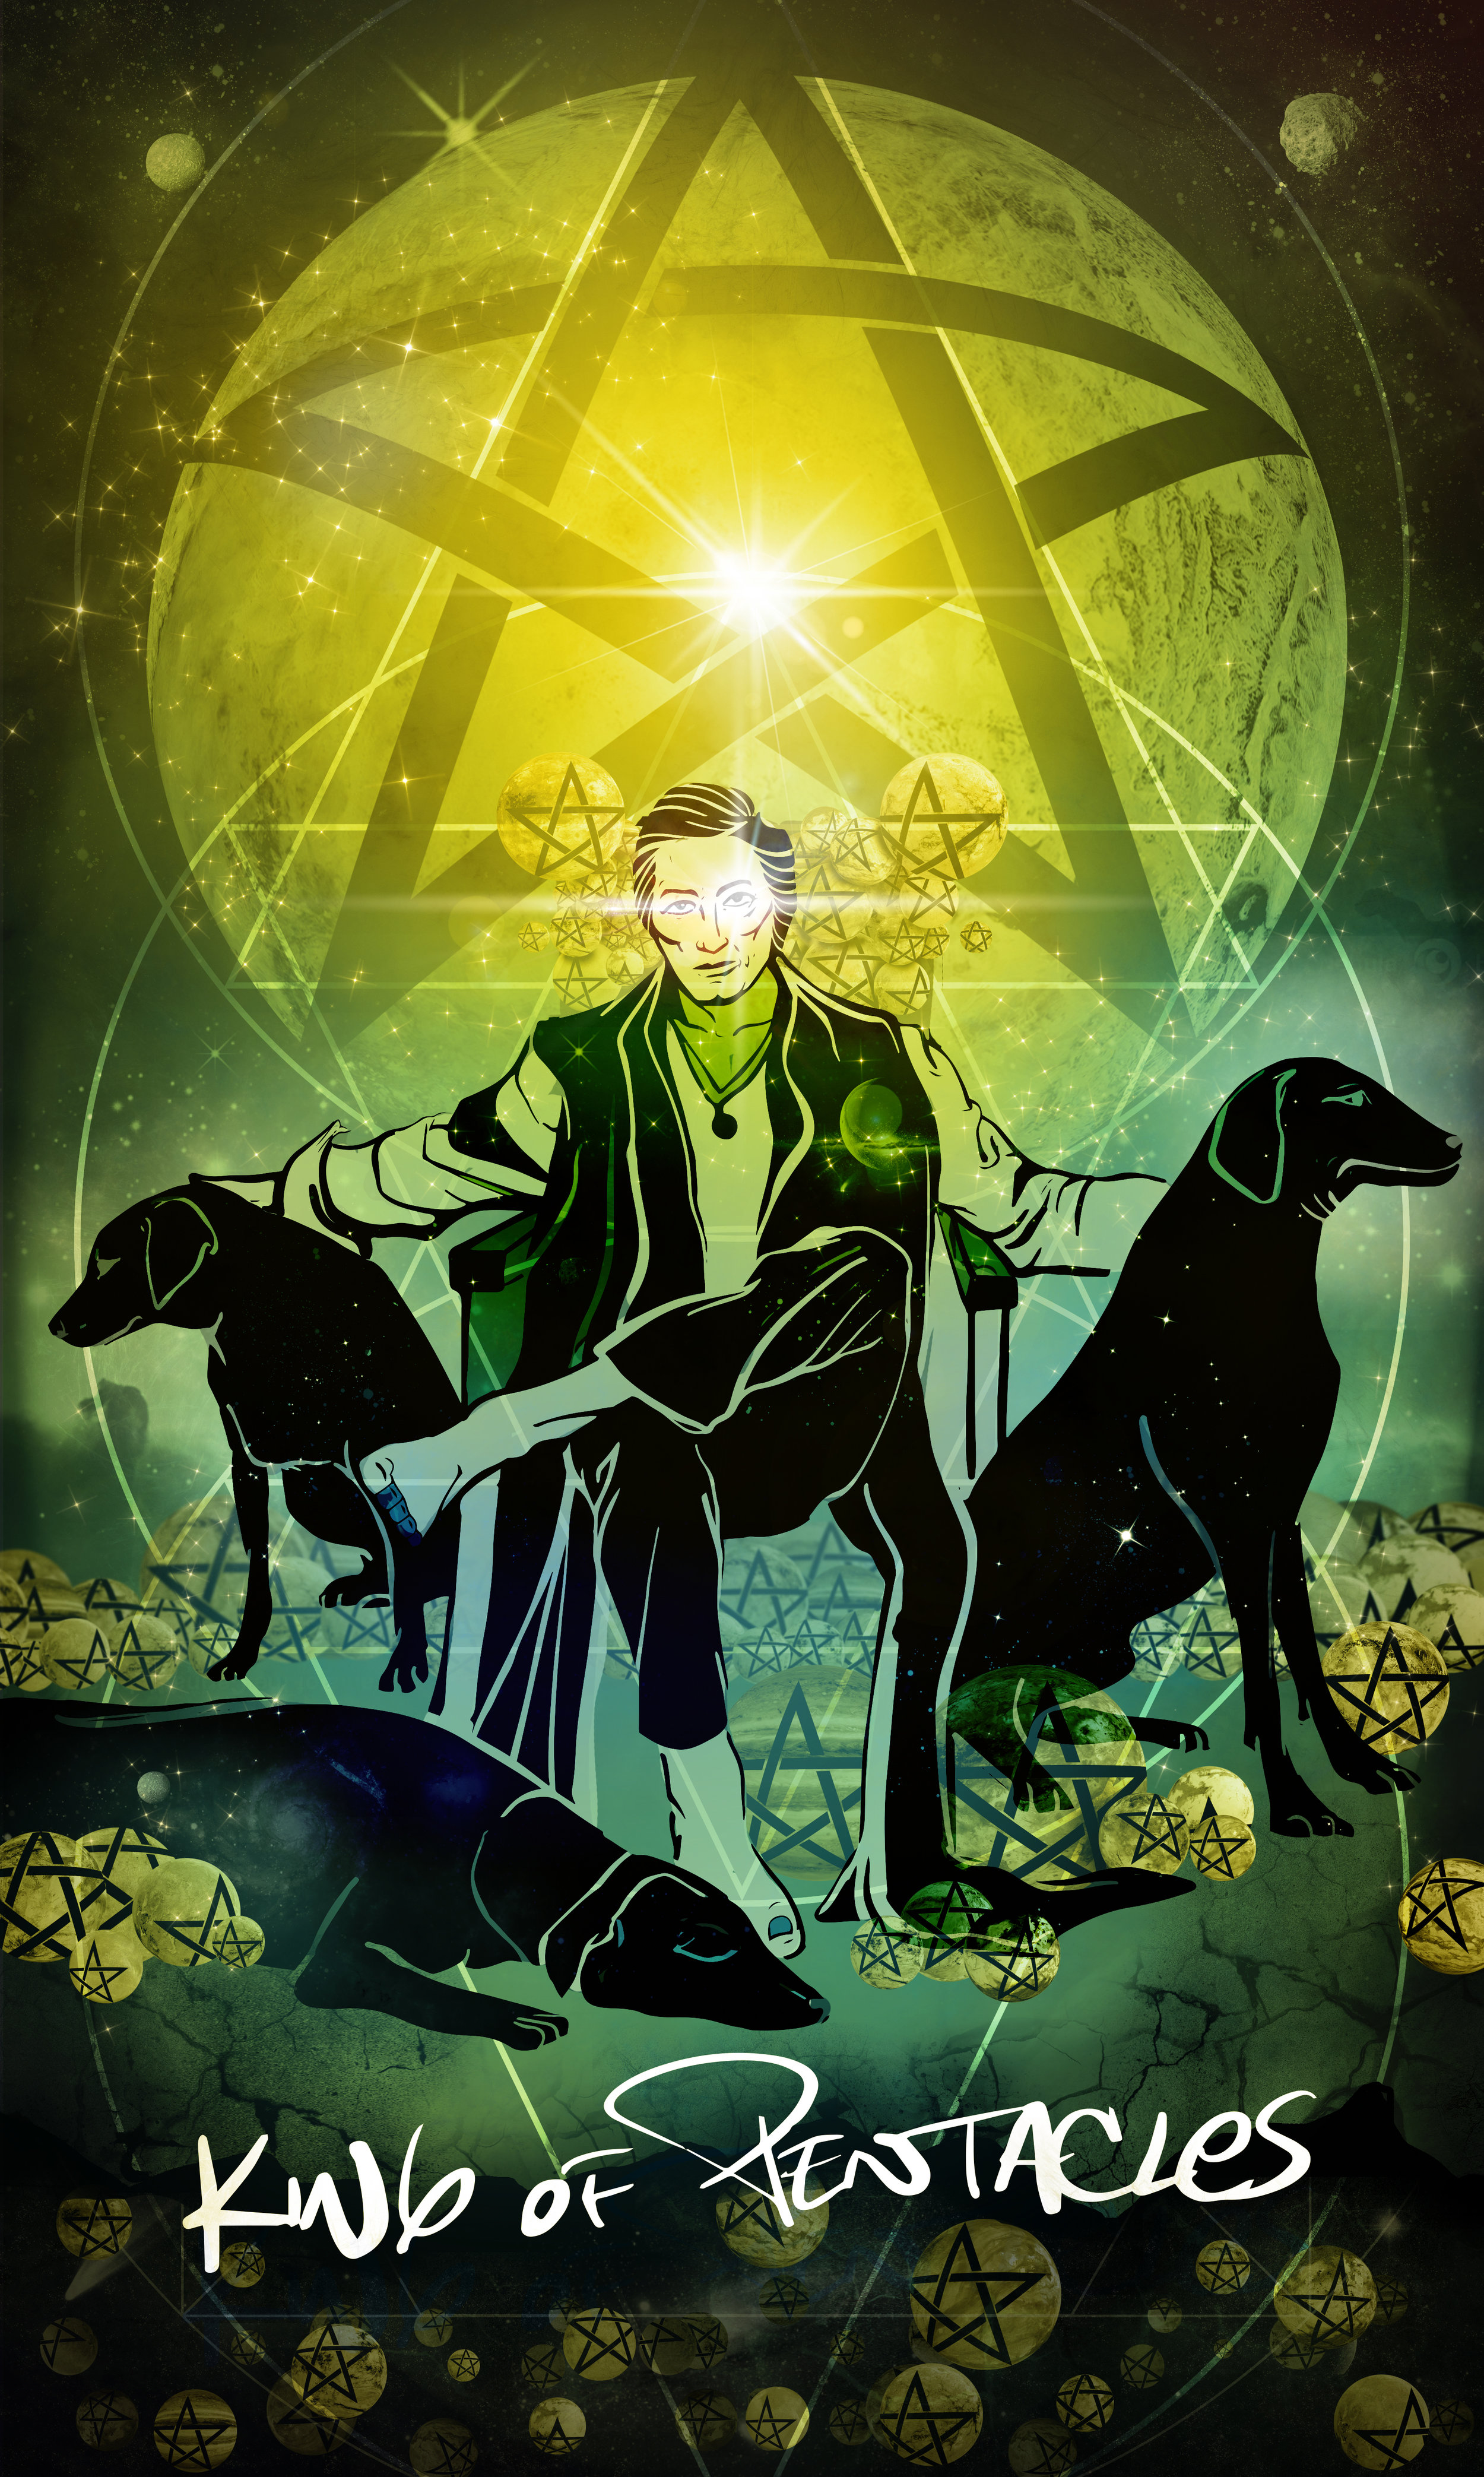 14_KING_OF_PENTACLES.jpg